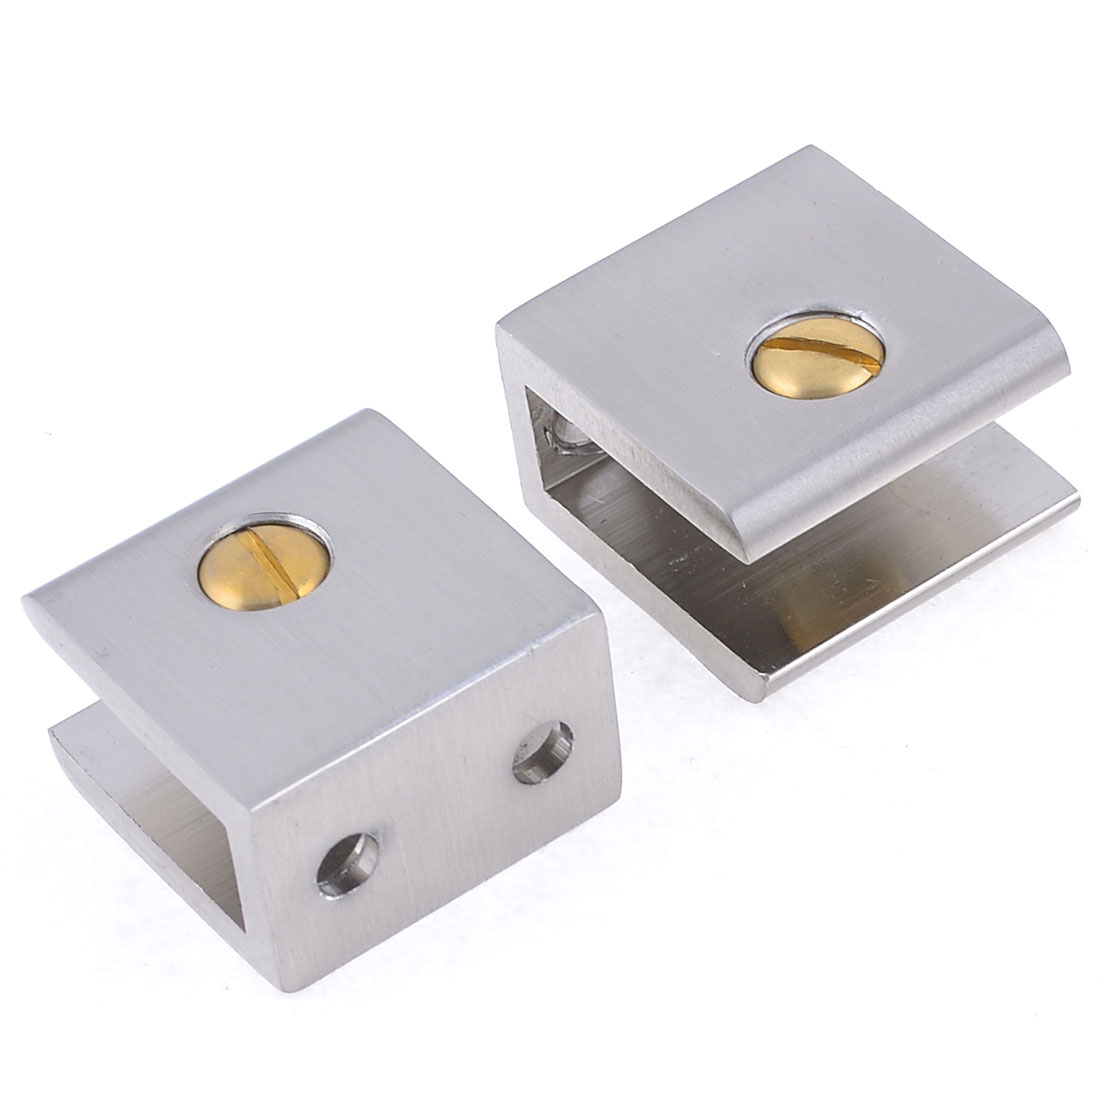 2 Pcs Silver Tone Aluminum Rectangular Clip Clamp for 11mm Thickness Glass